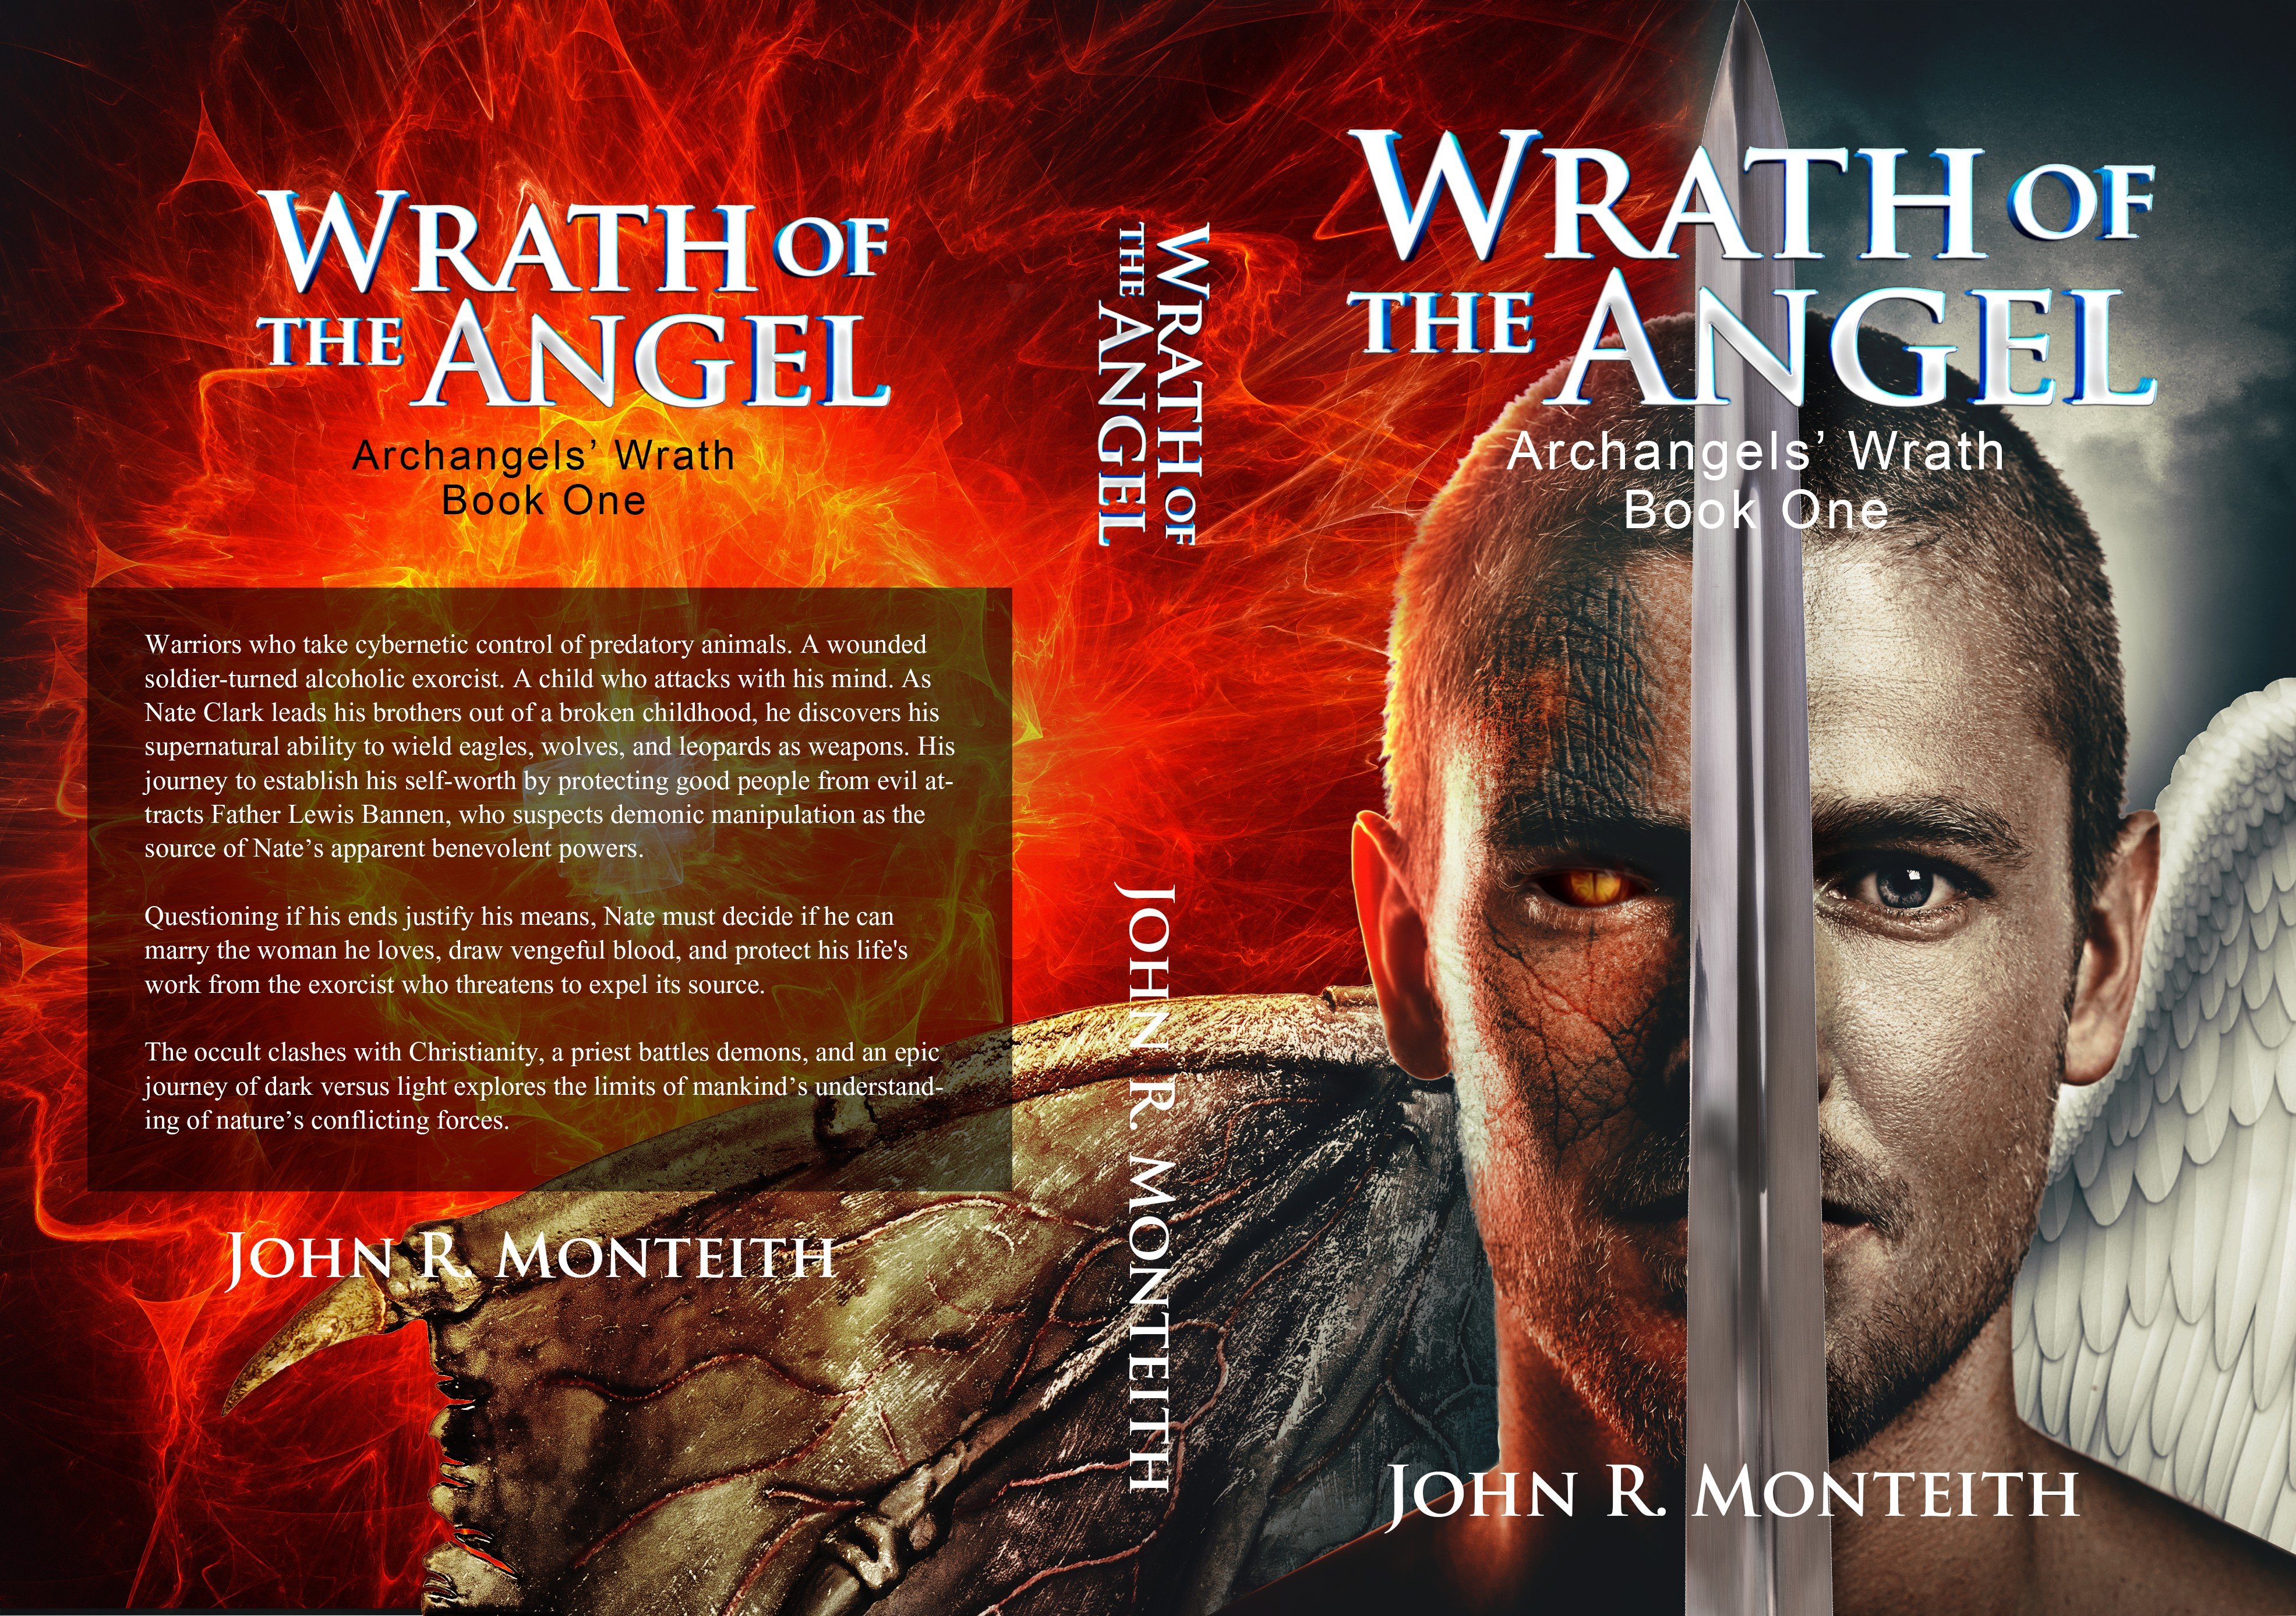 Create cover for books in a 3+ paranormal/religious novel series